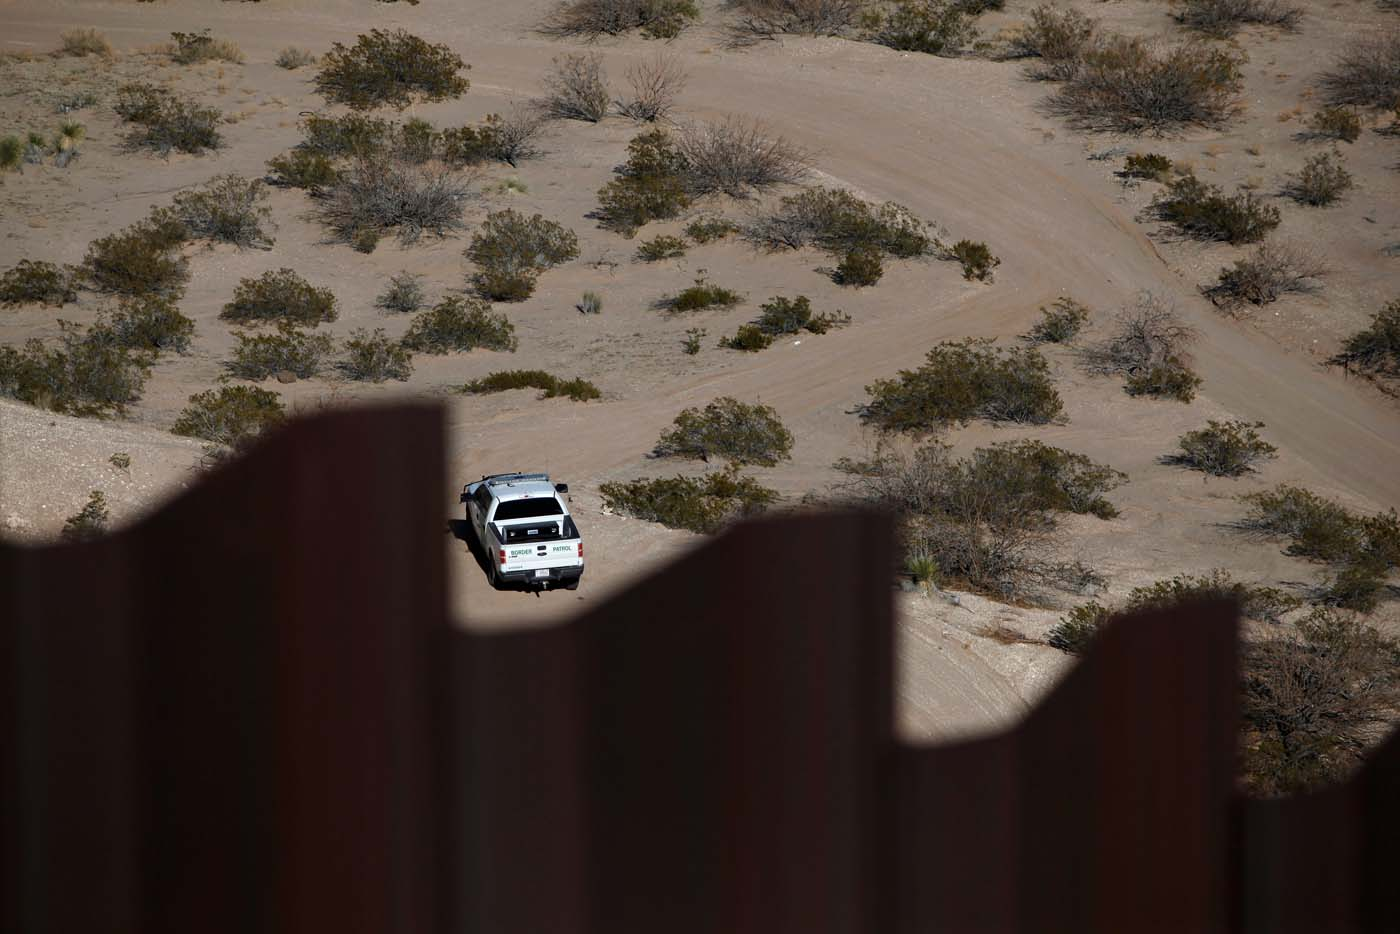 A Border Patrol vehicle is seen guarding at a newly built section of the U.S.-Mexico border fence at Sunland Park, U.S. opposite the Mexican border city of Ciudad Juarez, Mexico January 26, 2017. Picture taken from the Mexico side of the U.S.-Mexico border. REUTERS/Jose Luis Gonzalez